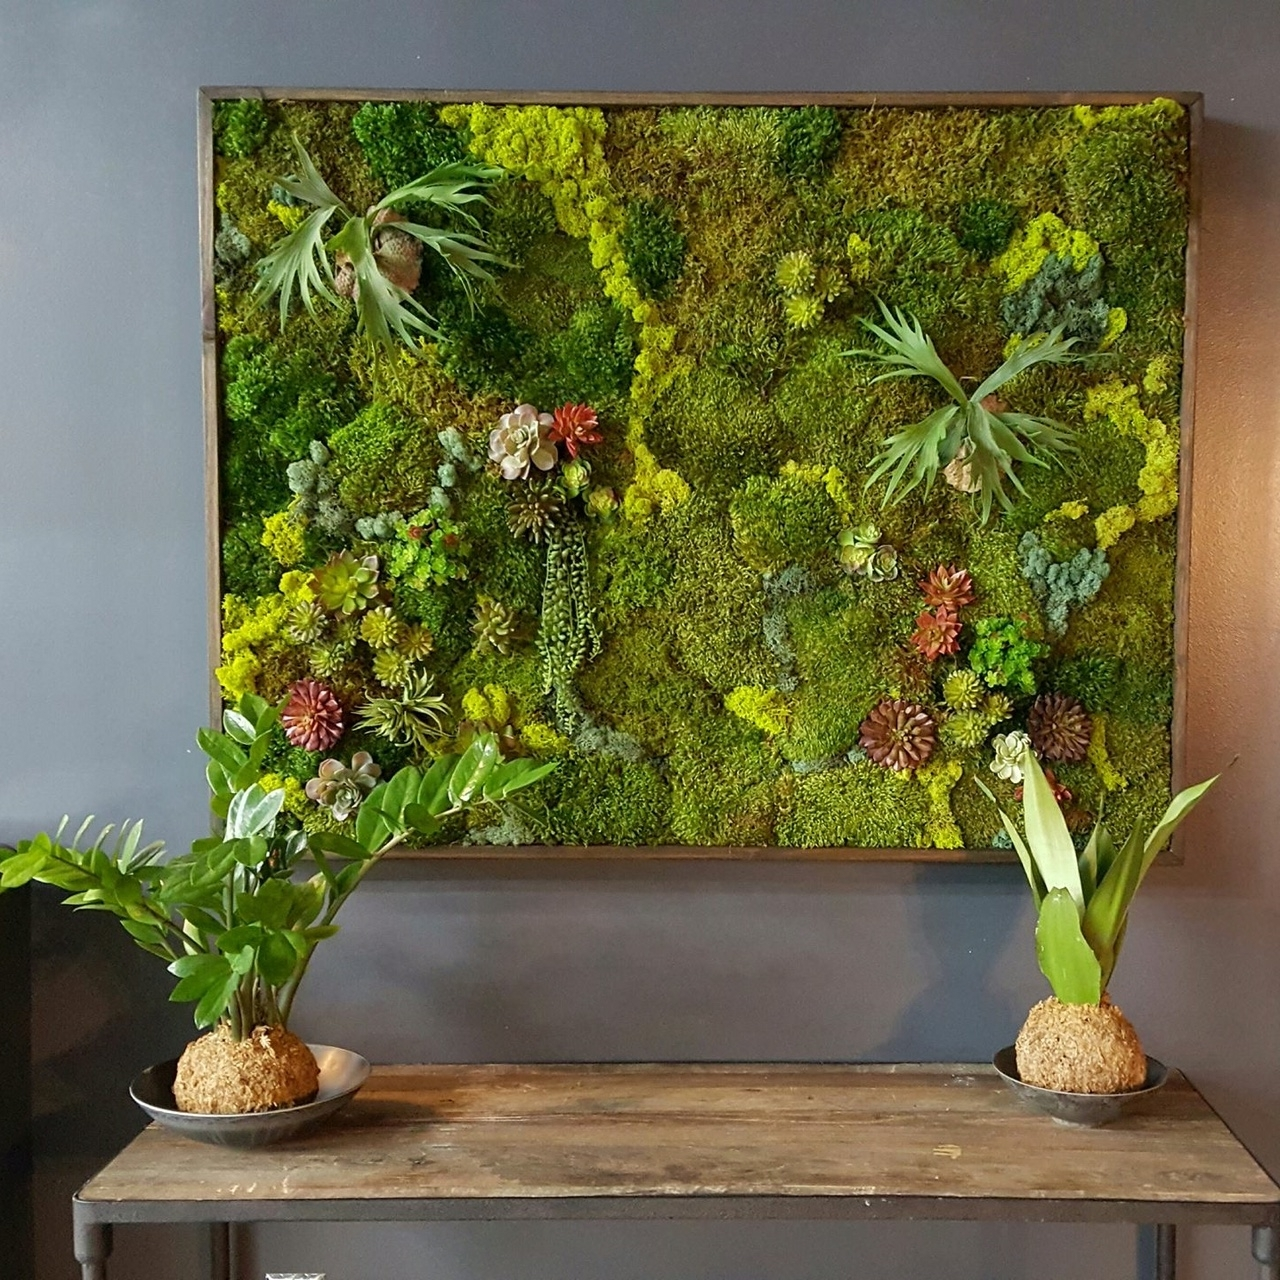 Moss Wall Art For 2017 Your Questions About Moss Walls Answered (View 6 of 15)